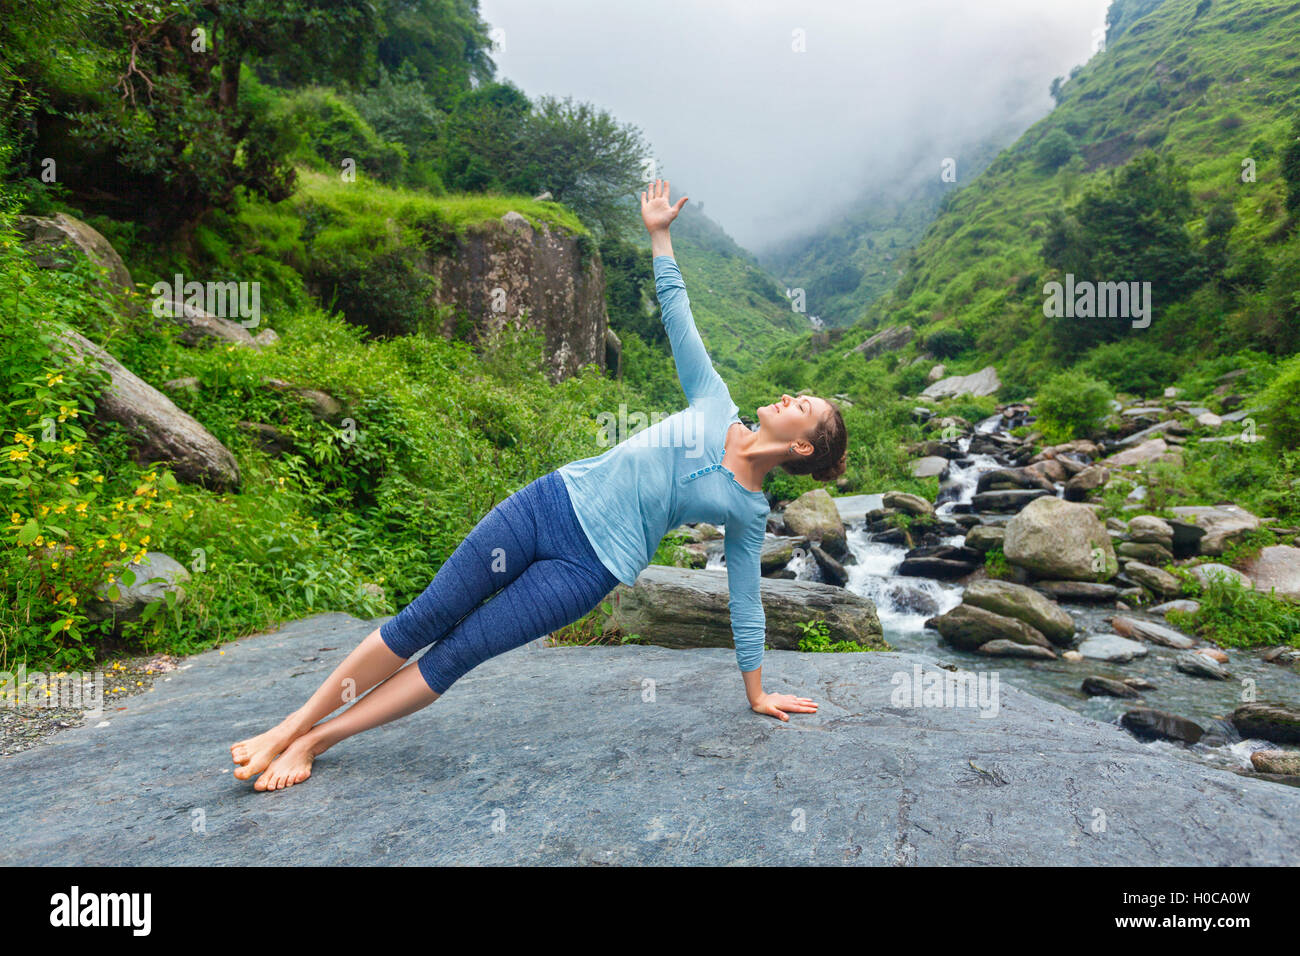 Woman doing yoga asana Vasisthasana - side plank pose outdoors - Stock Image